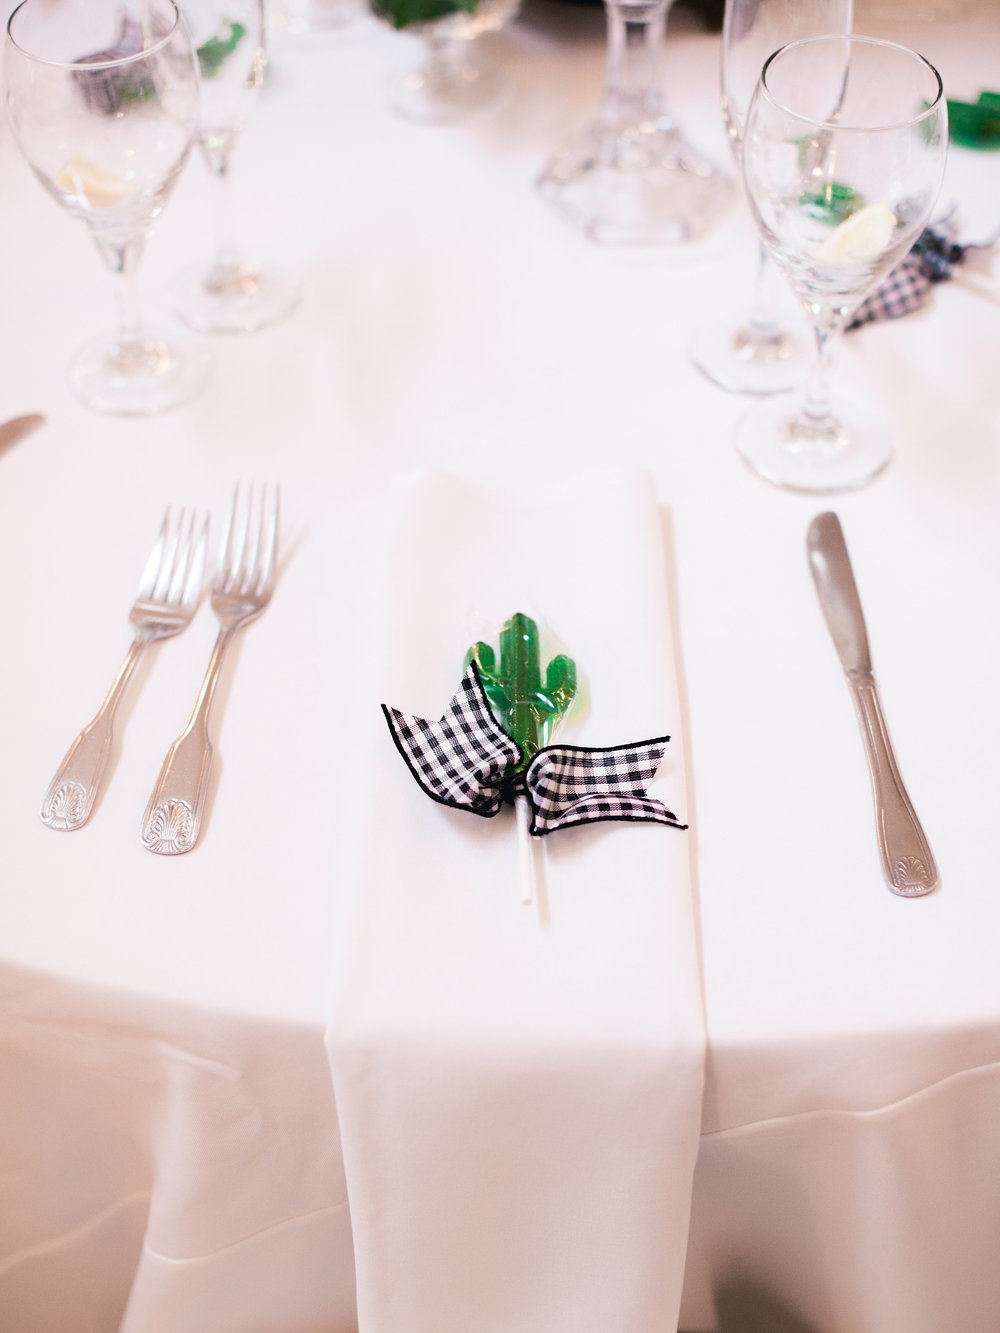 Favors - Favors are fun, stylish and just add additional pop of detail. However, they can get costly starting at $3.00 per guest even with you DYI